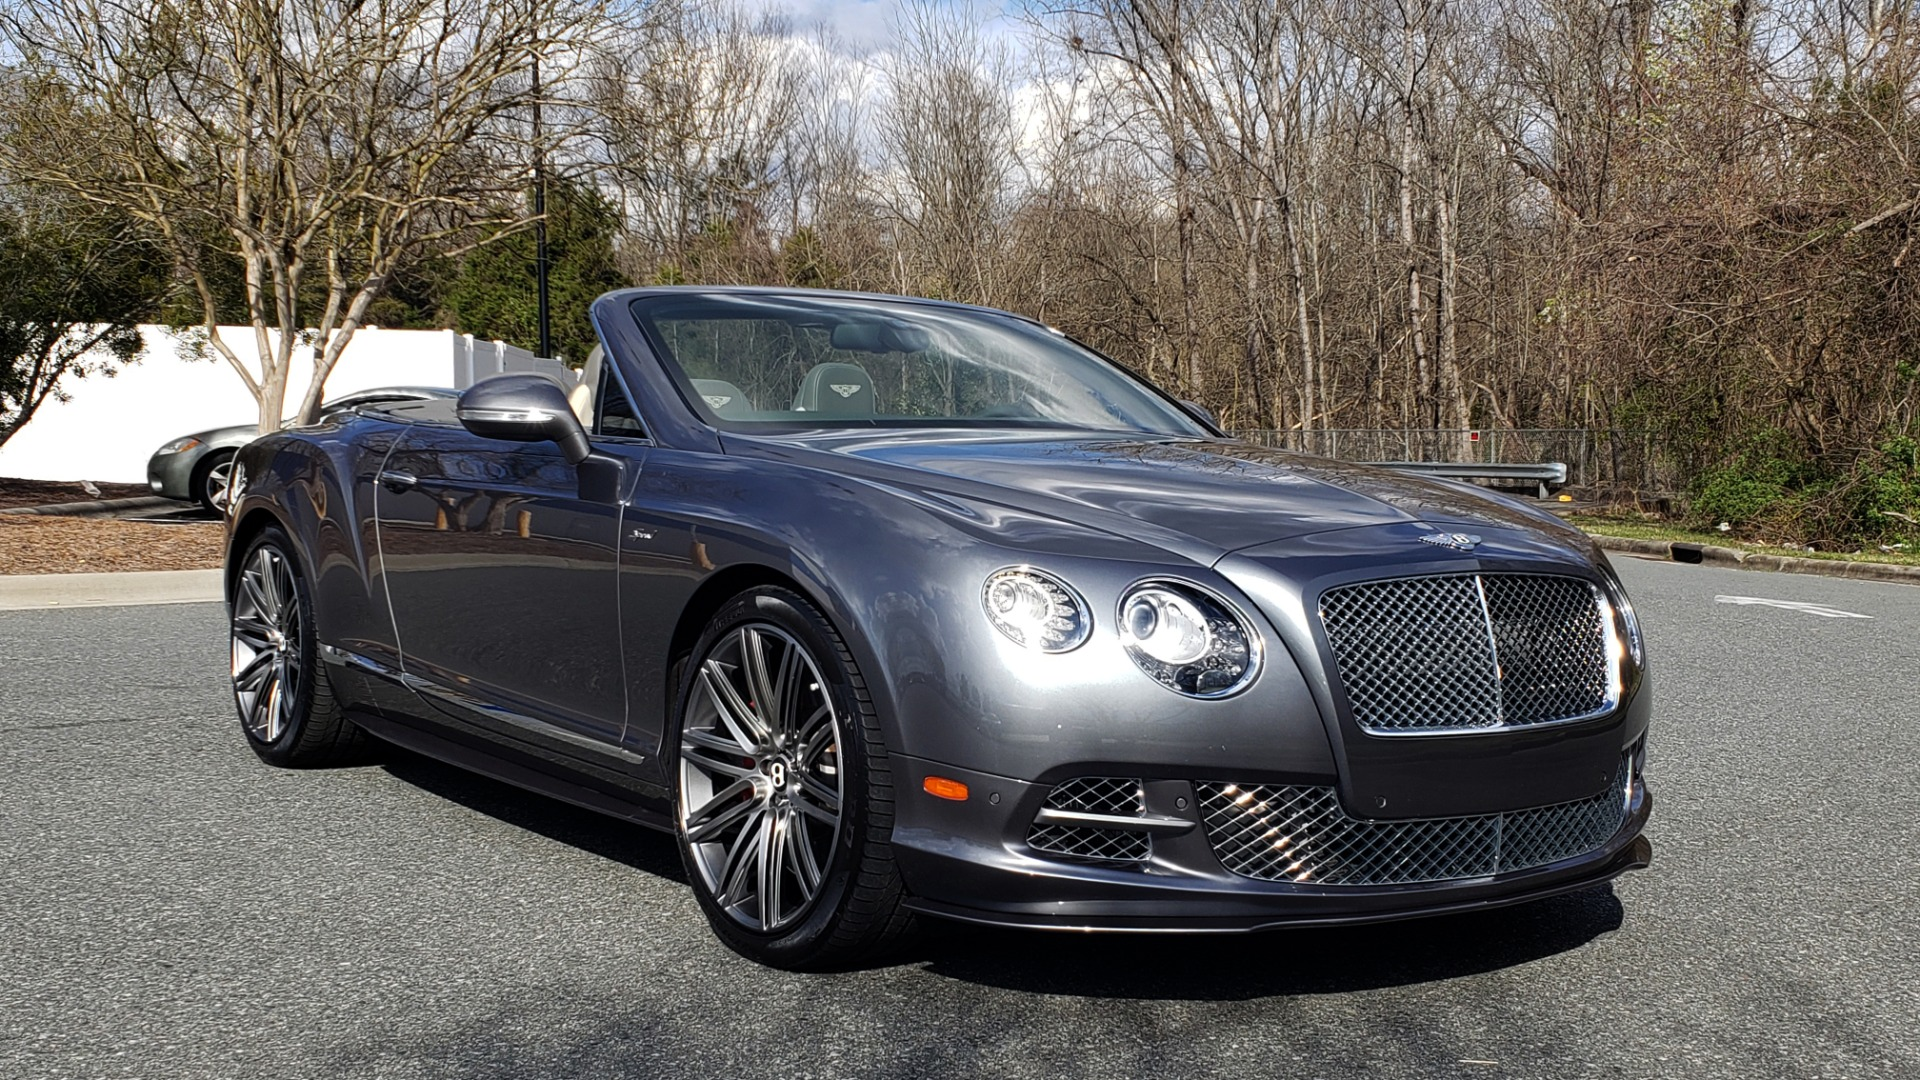 Used 2015 Bentley CONTINENTAL SPEED CONV / 6.0L W12 / NAV / VENT SEATS / REARVIEW for sale Sold at Formula Imports in Charlotte NC 28227 12